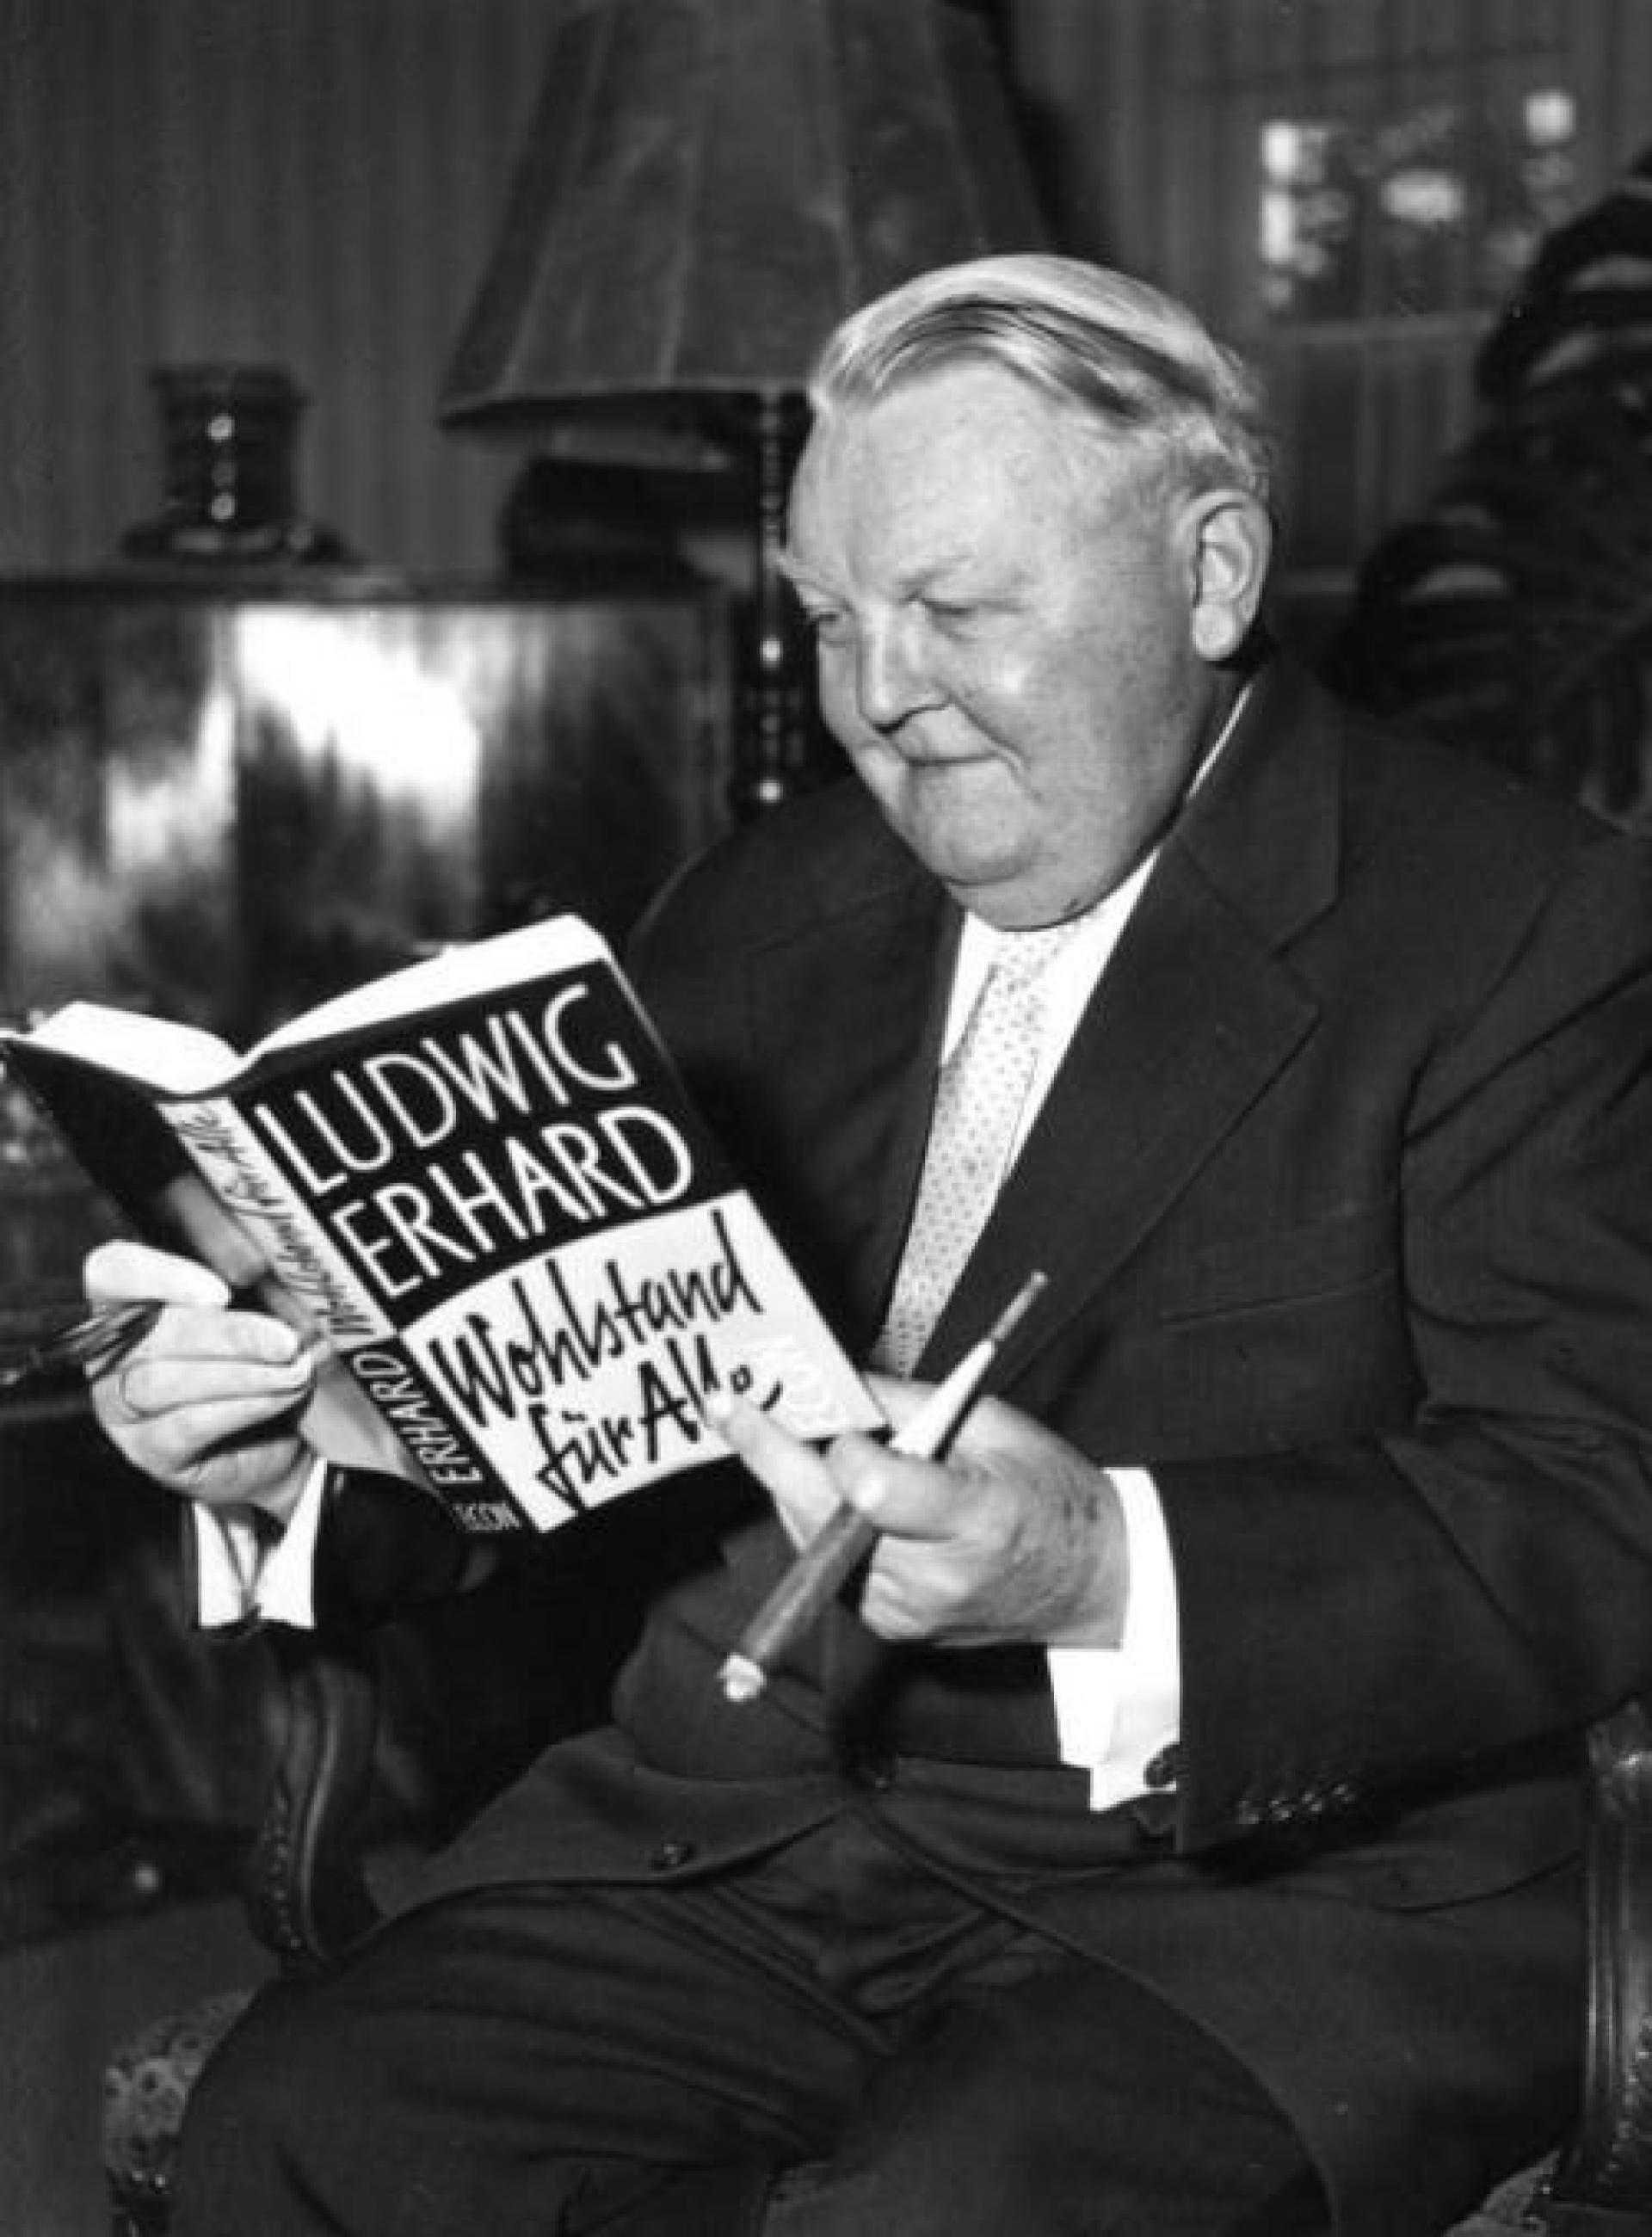 The second Chancellor of Germany, Ludwig Erhard.